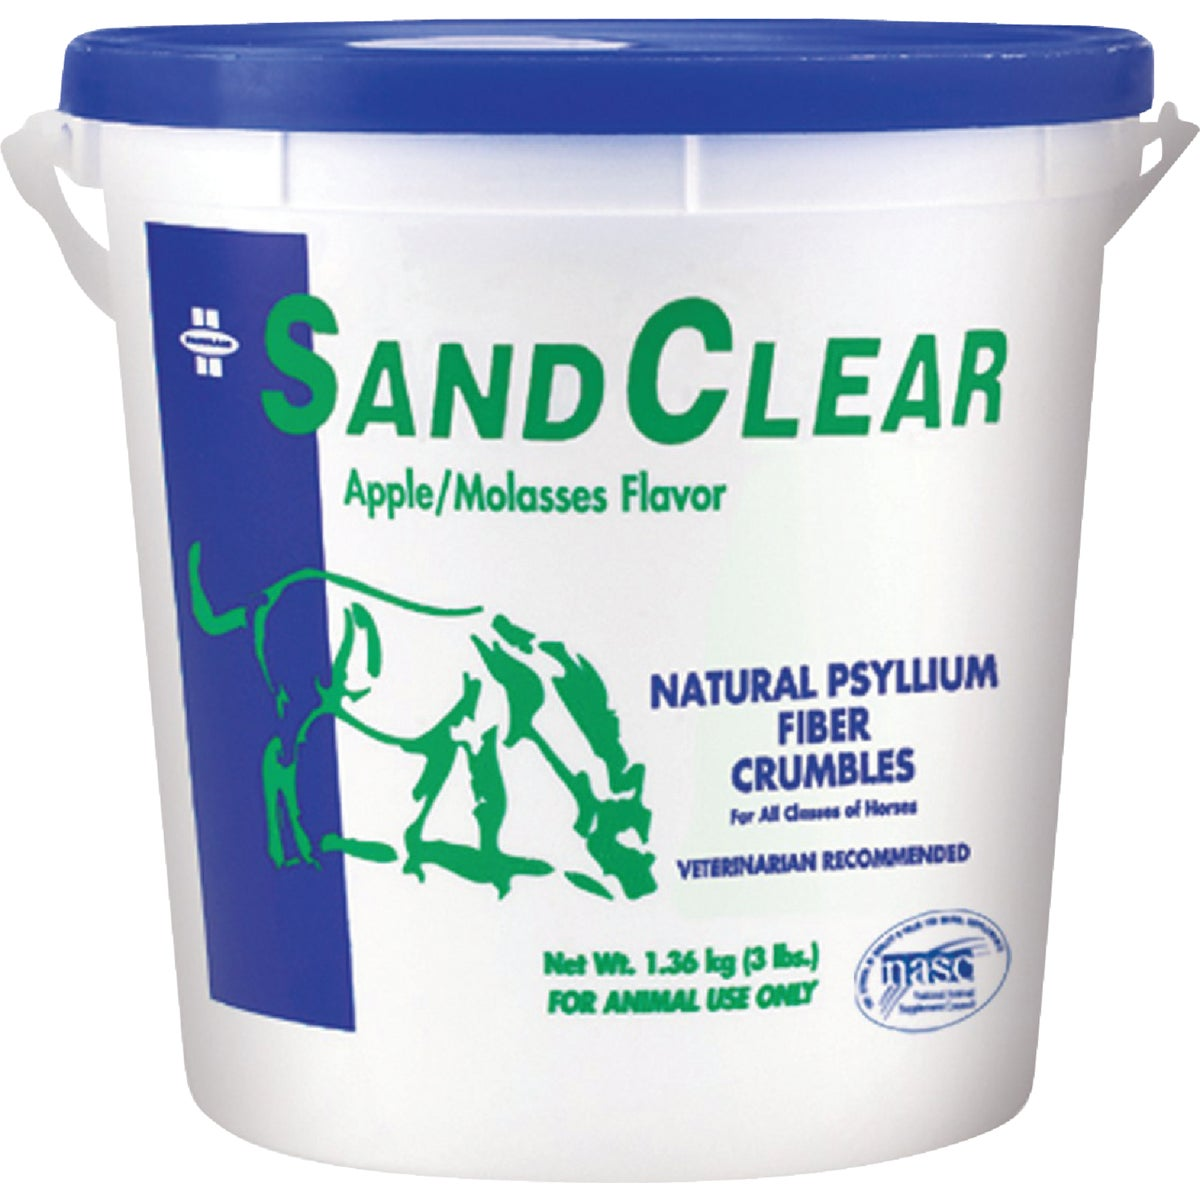 3LB SANDCLEAR - 10203 by Farnam Central Life